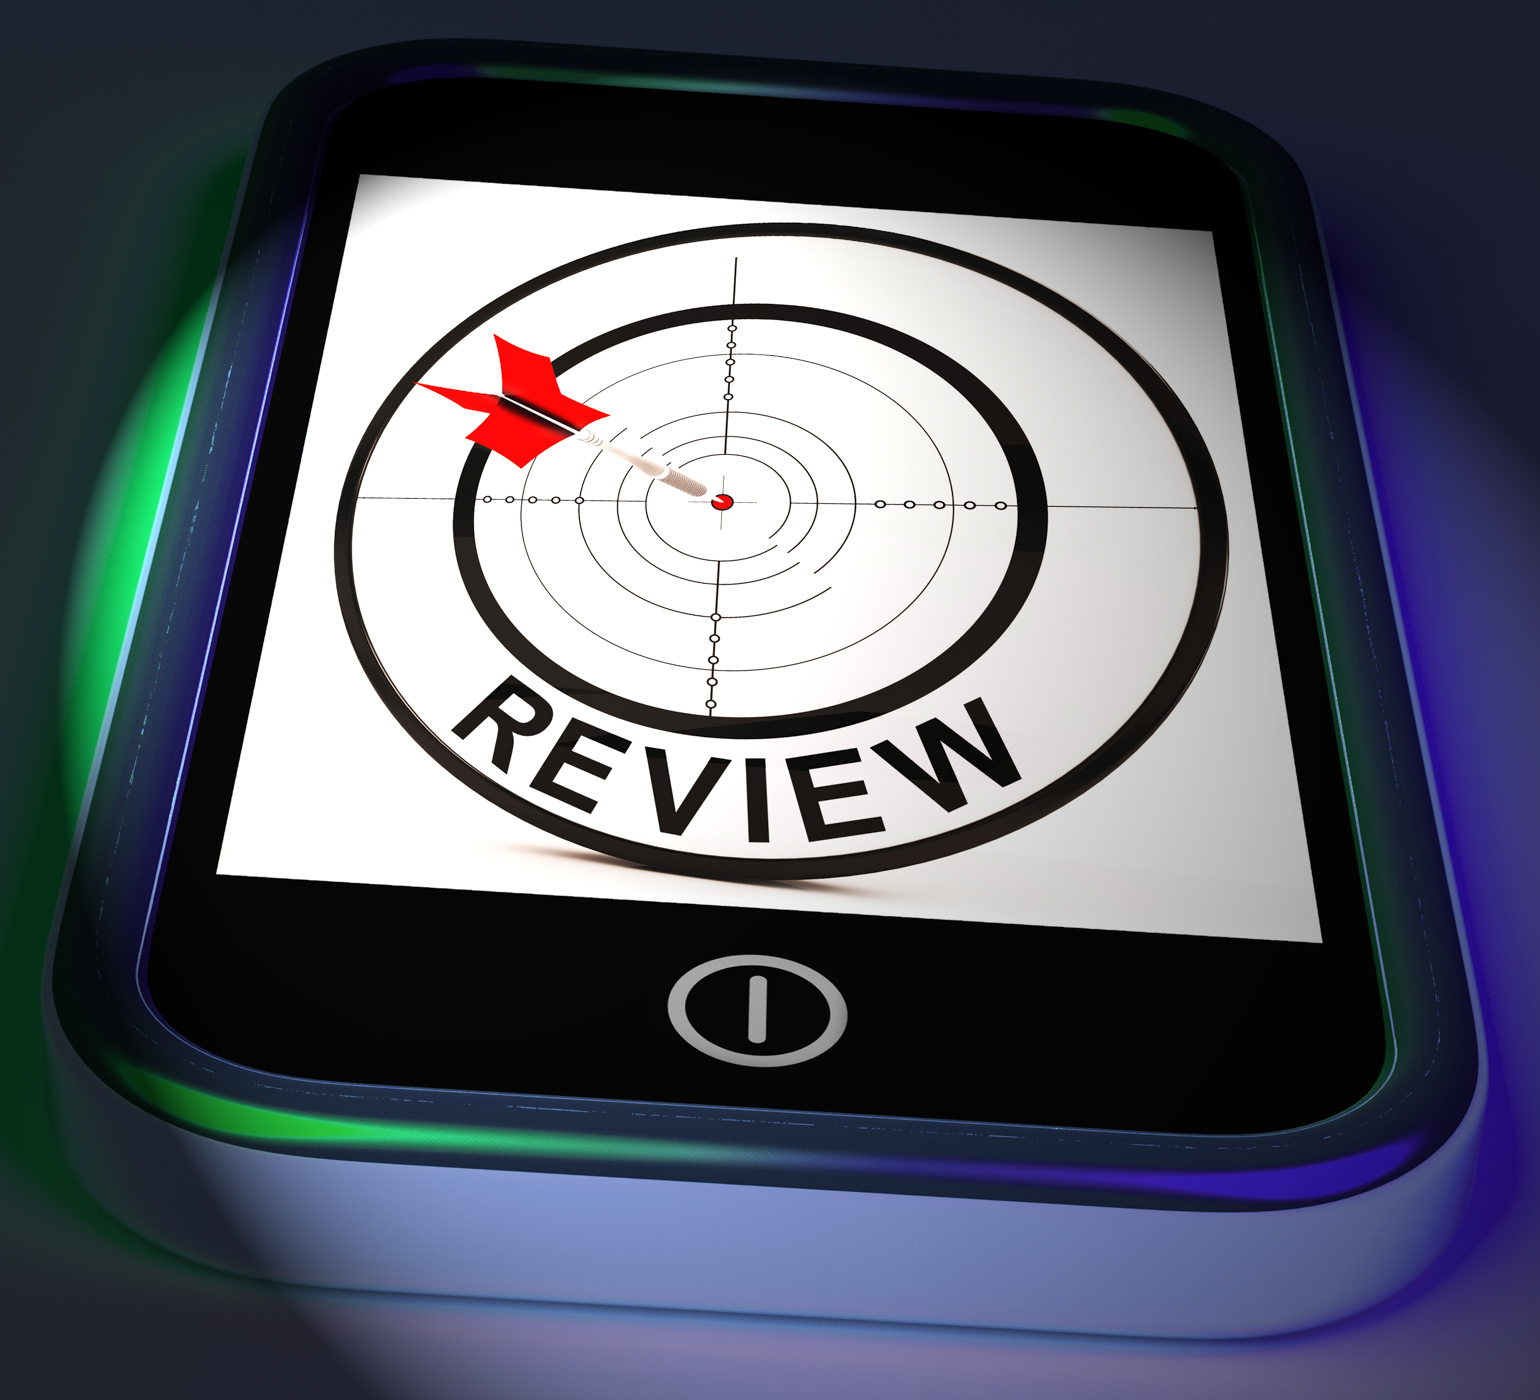 Review smartphone displays feedback evaluation and assessment photo